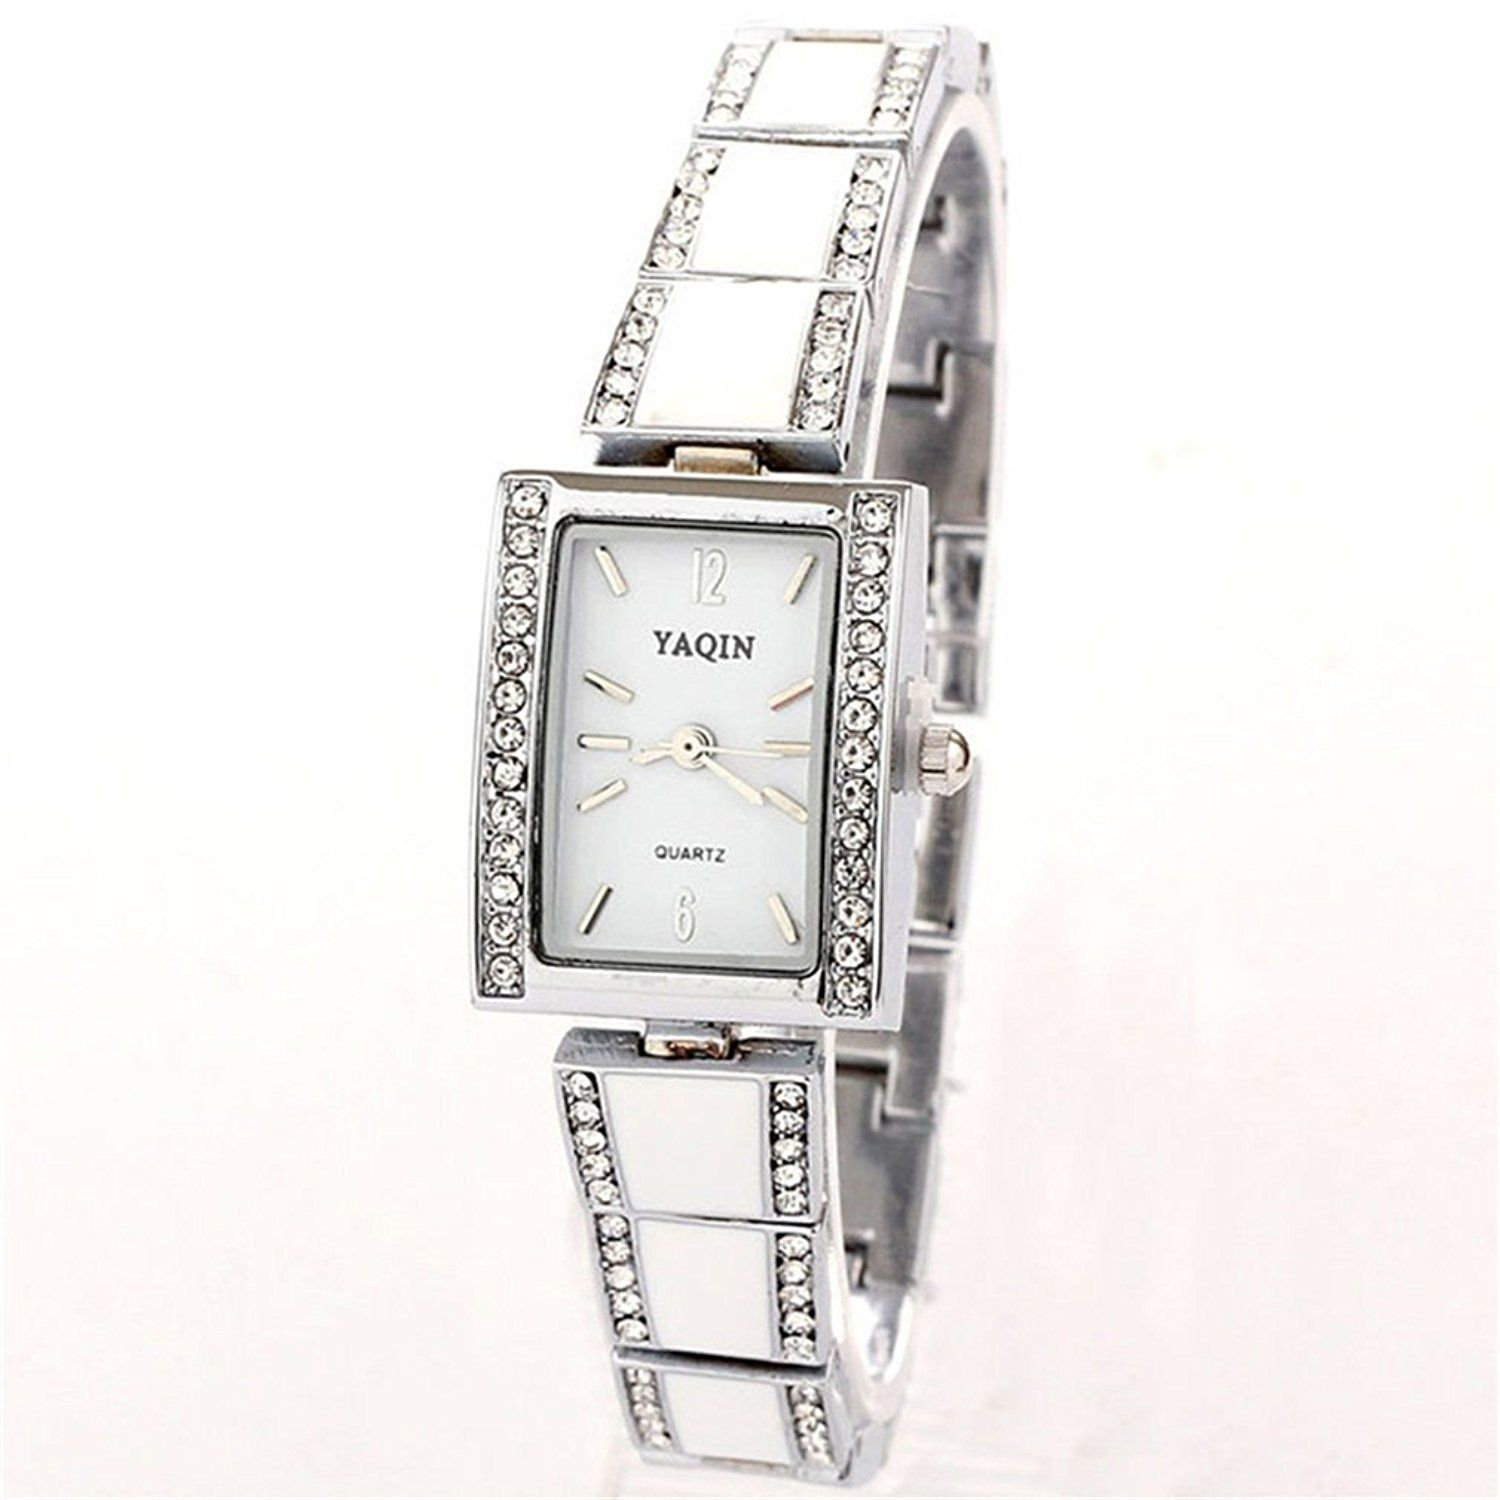 BUYEONLINE Women's Fashion Wrist China Rhinestone Casual Watch White -- Trust me, this is great! Click the image.